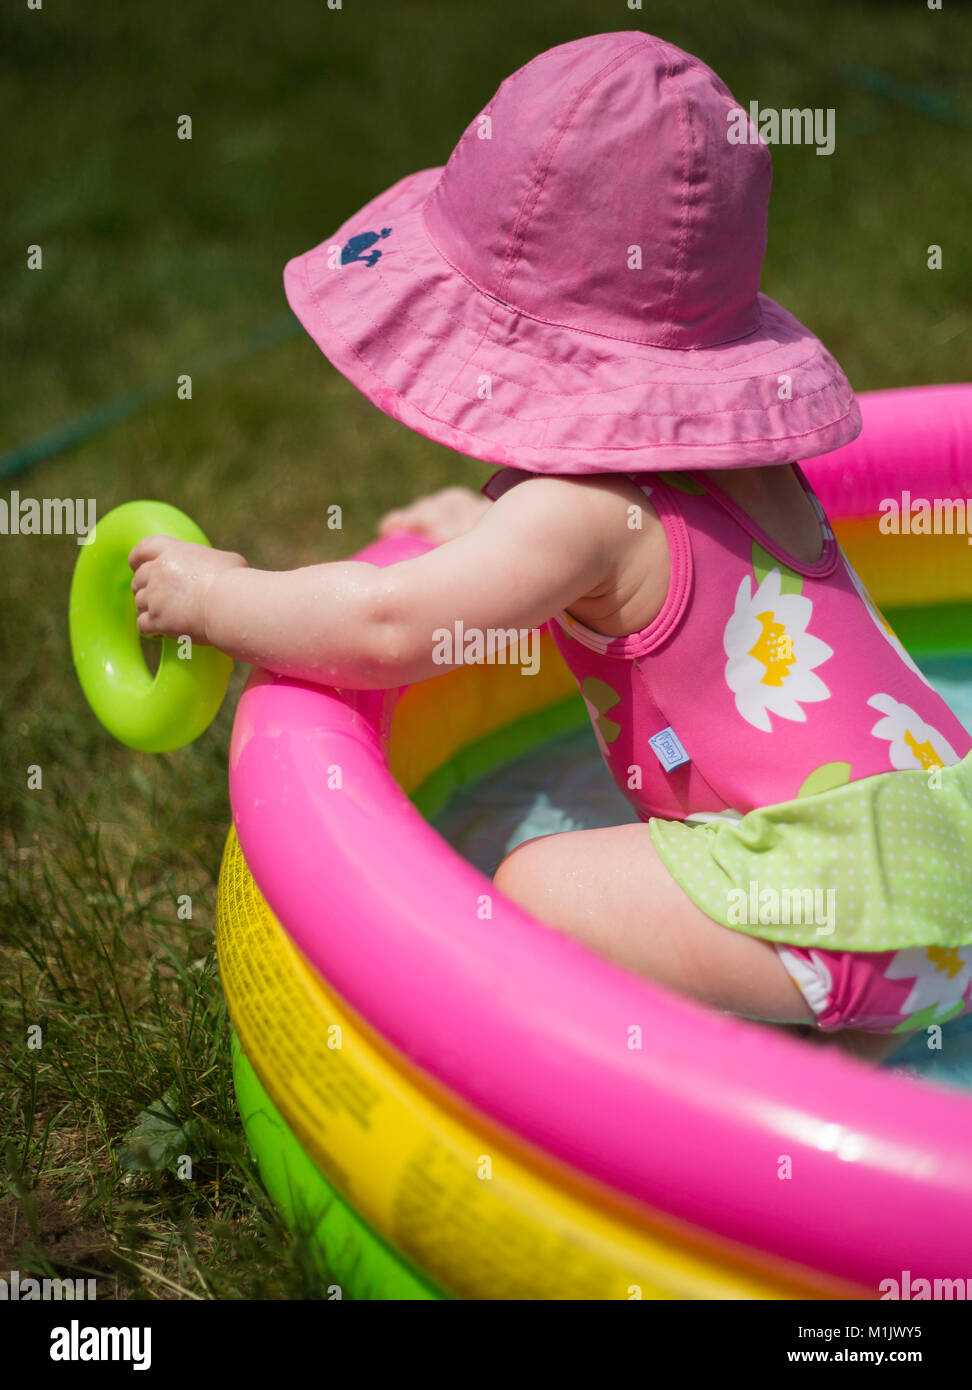 Baby in Pink Hat Playing in Kiddie Pool - Stock Image